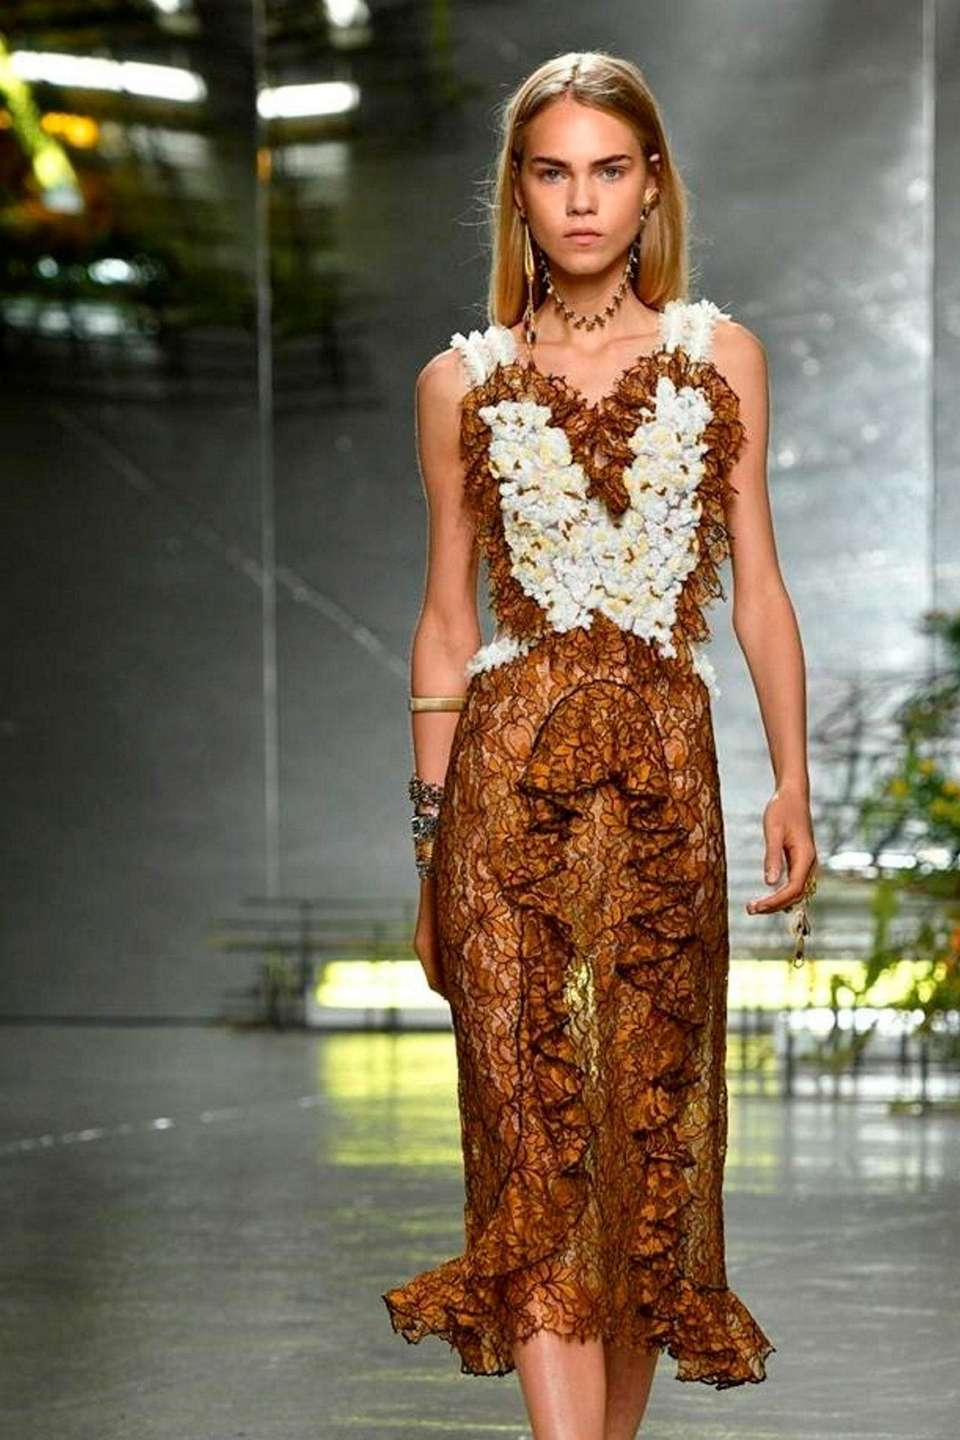 Rodarte envisions a romantic spring, with this amber